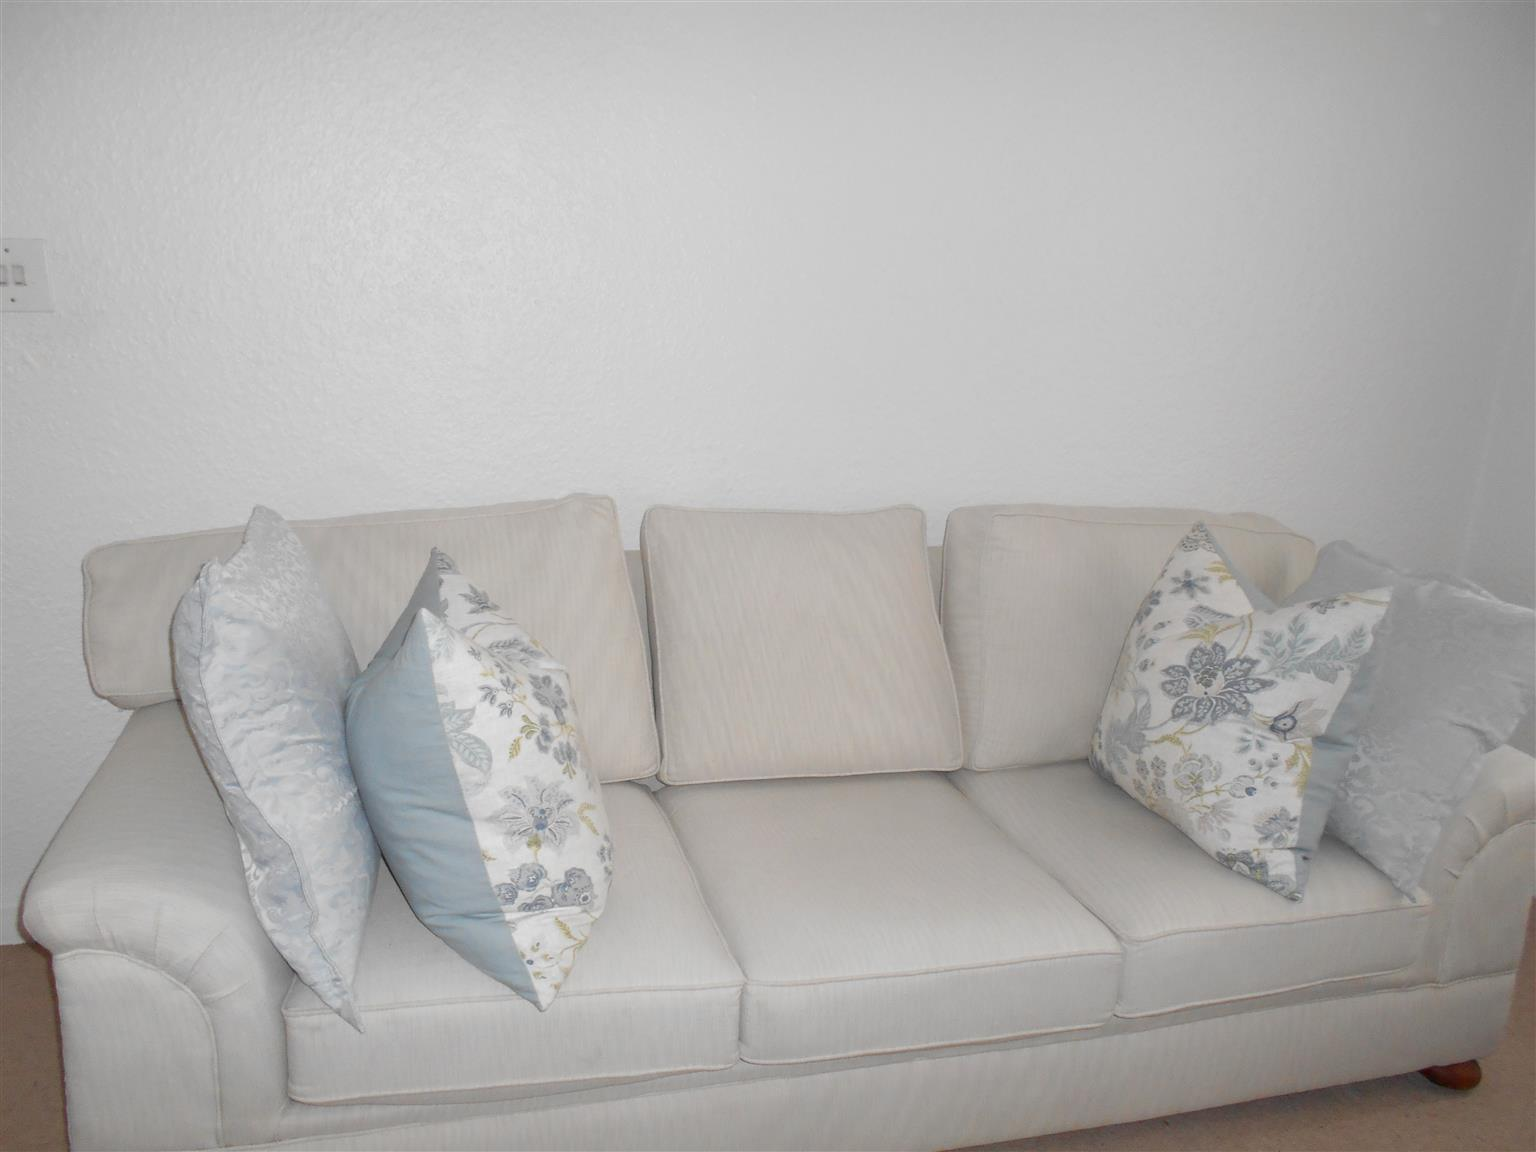 Wetherlys good quality 3 seater couch